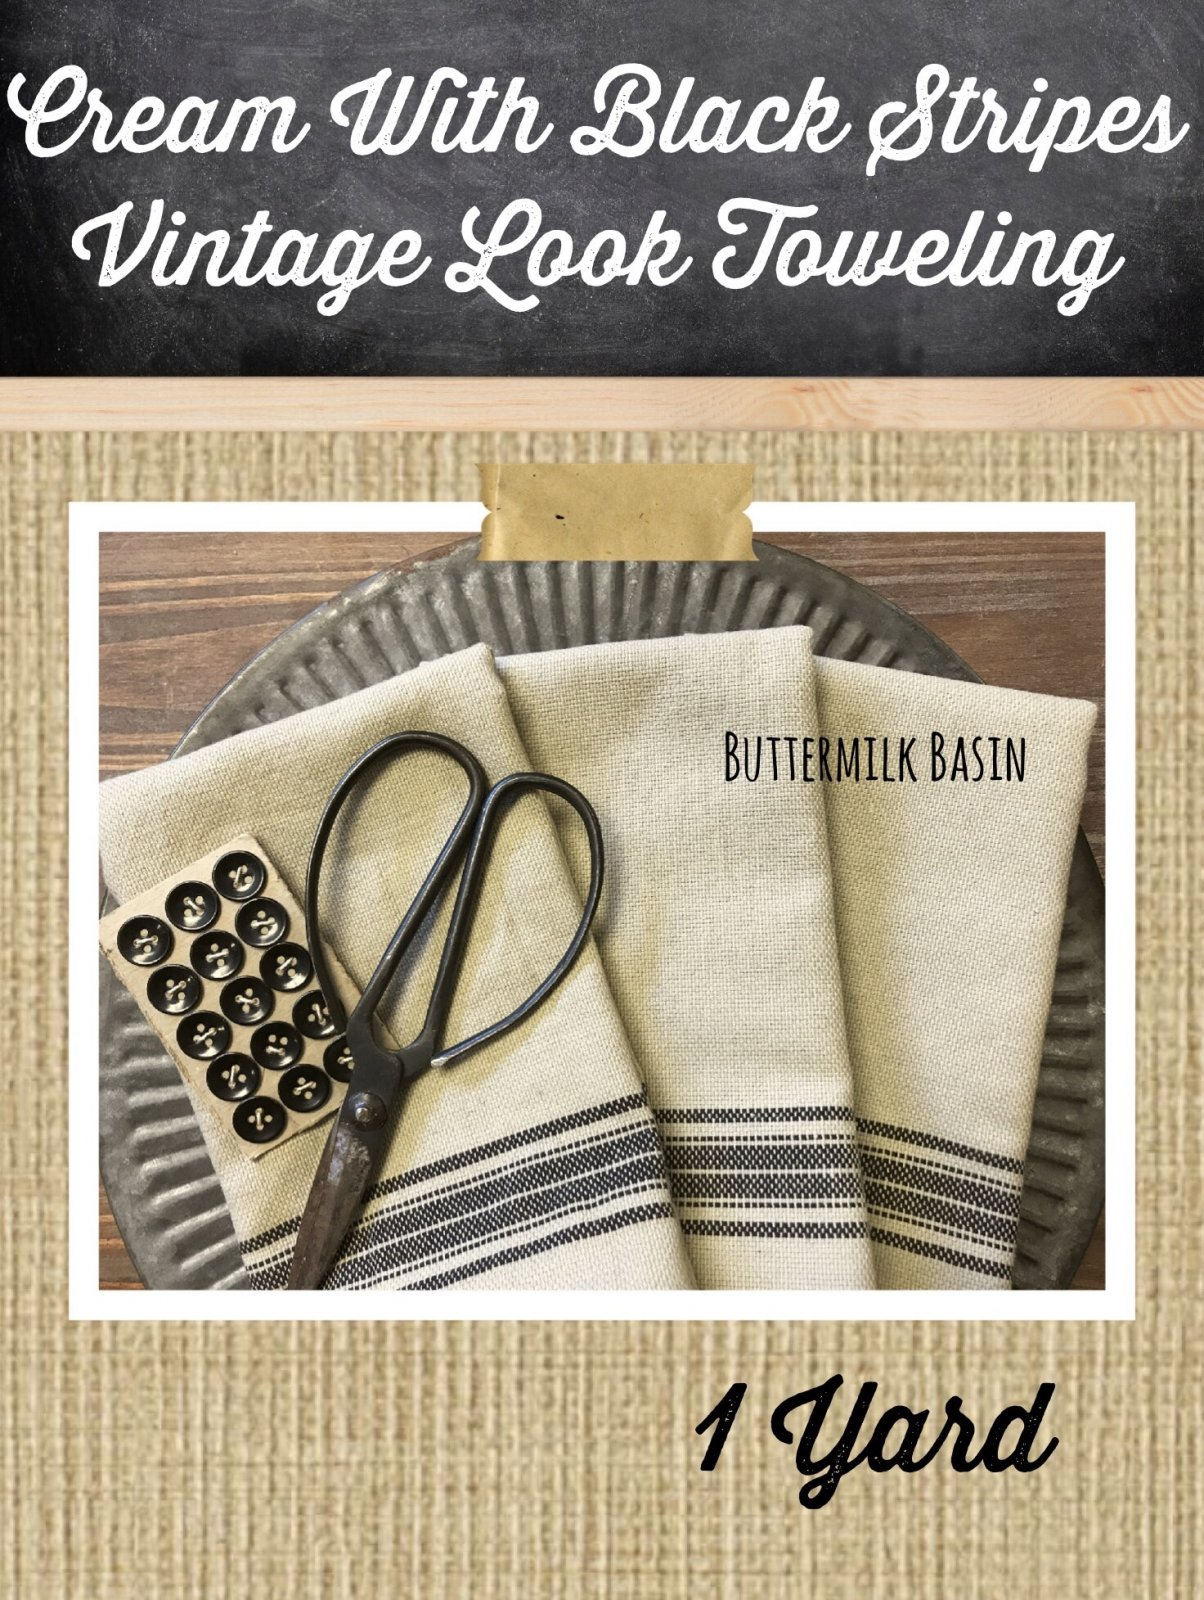 Cream with Black Stripes Vintage Look Toweling